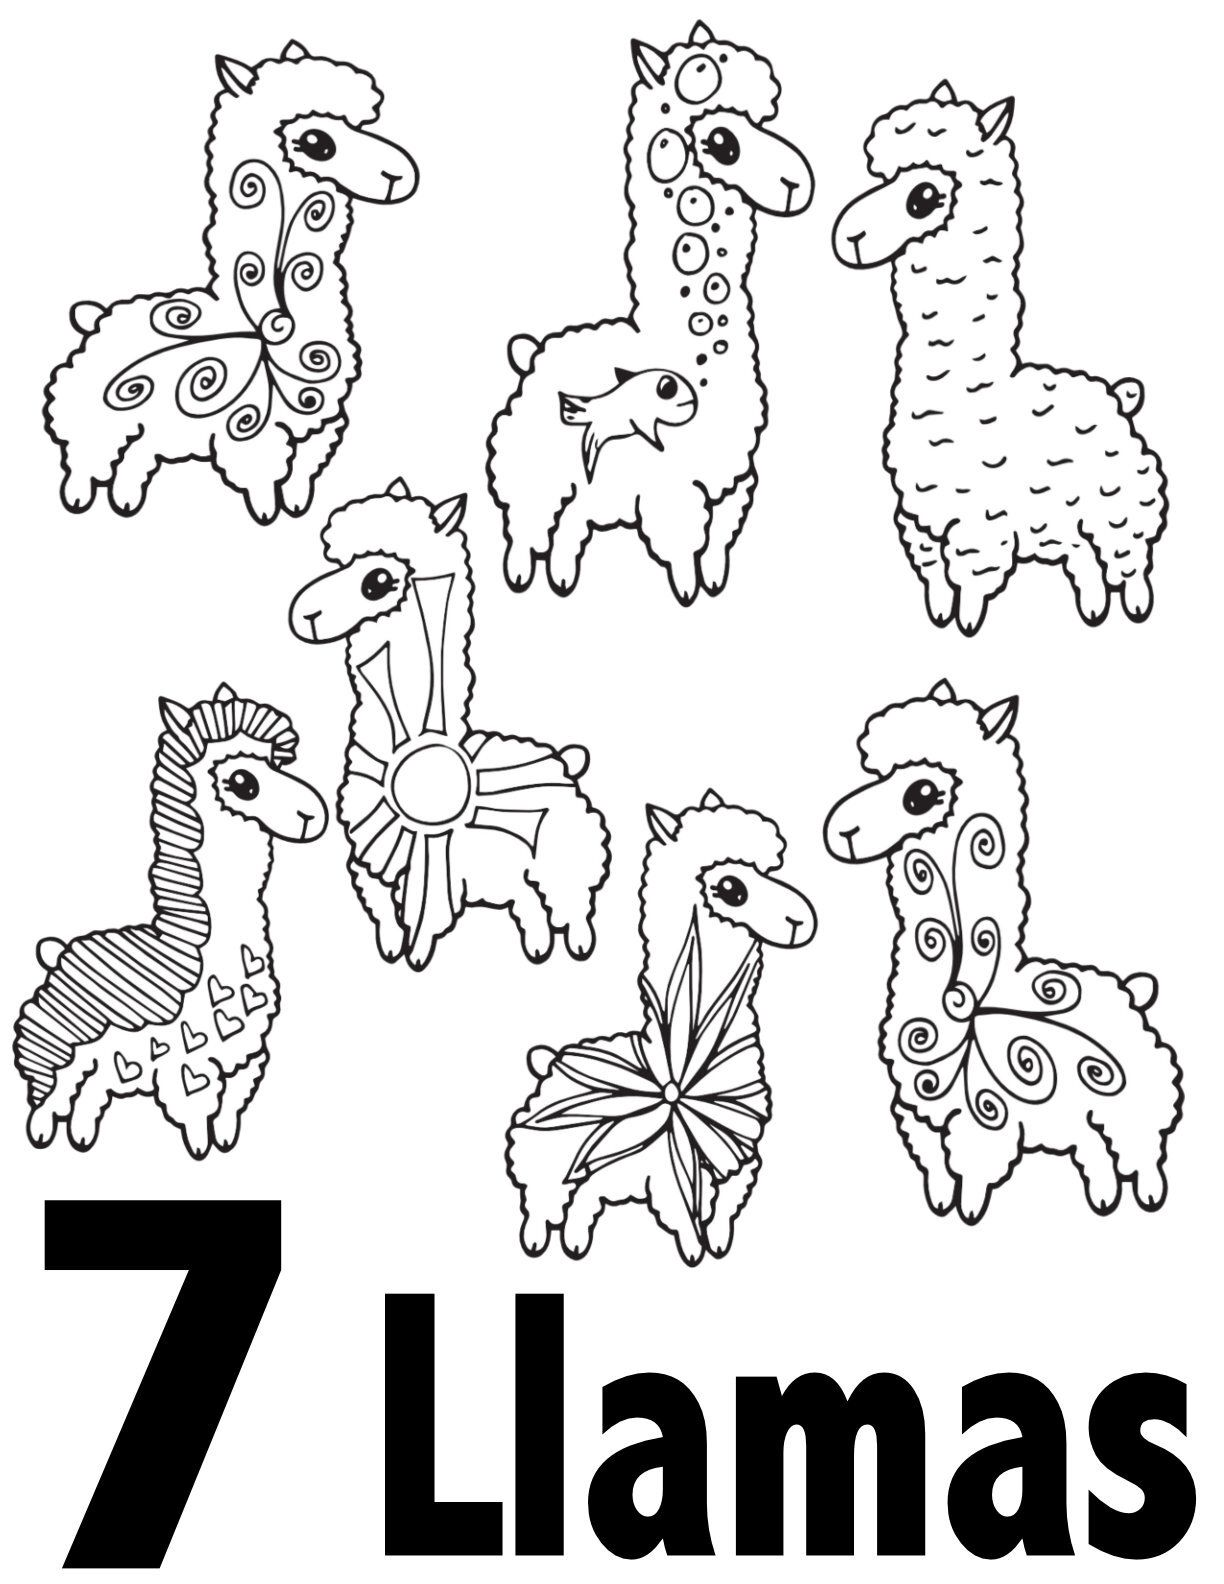 Llama Numbers 1 10 Free Printable Coloring Pages Preschool Kindergarten Kindergarten Coloring Pages Free Kids Coloring Pages Free Printable Coloring Pages